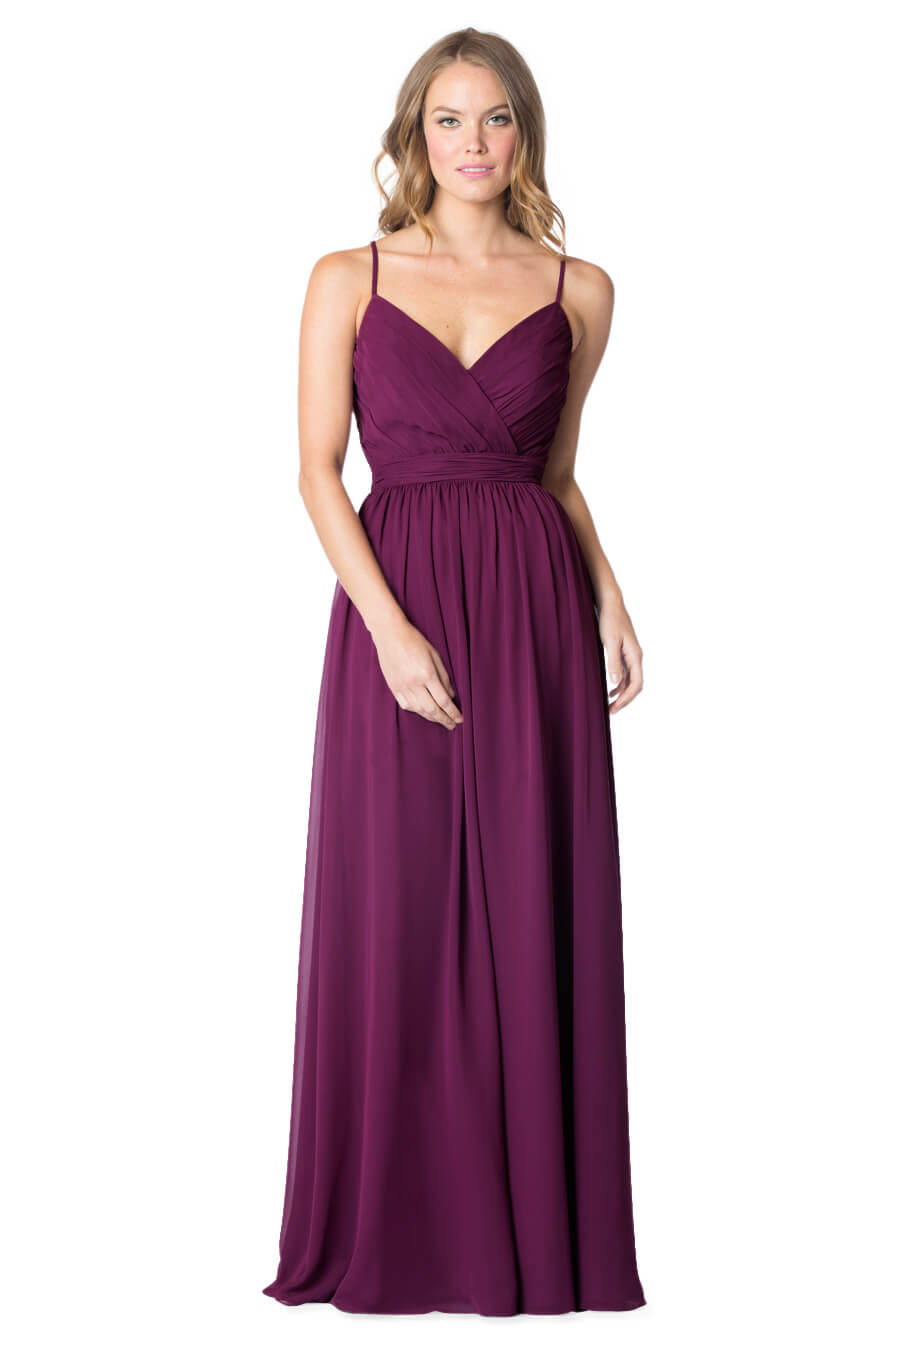 STYLE: 1606 (available short 1606-s) | Bridesmaid Dresses, Evening ...